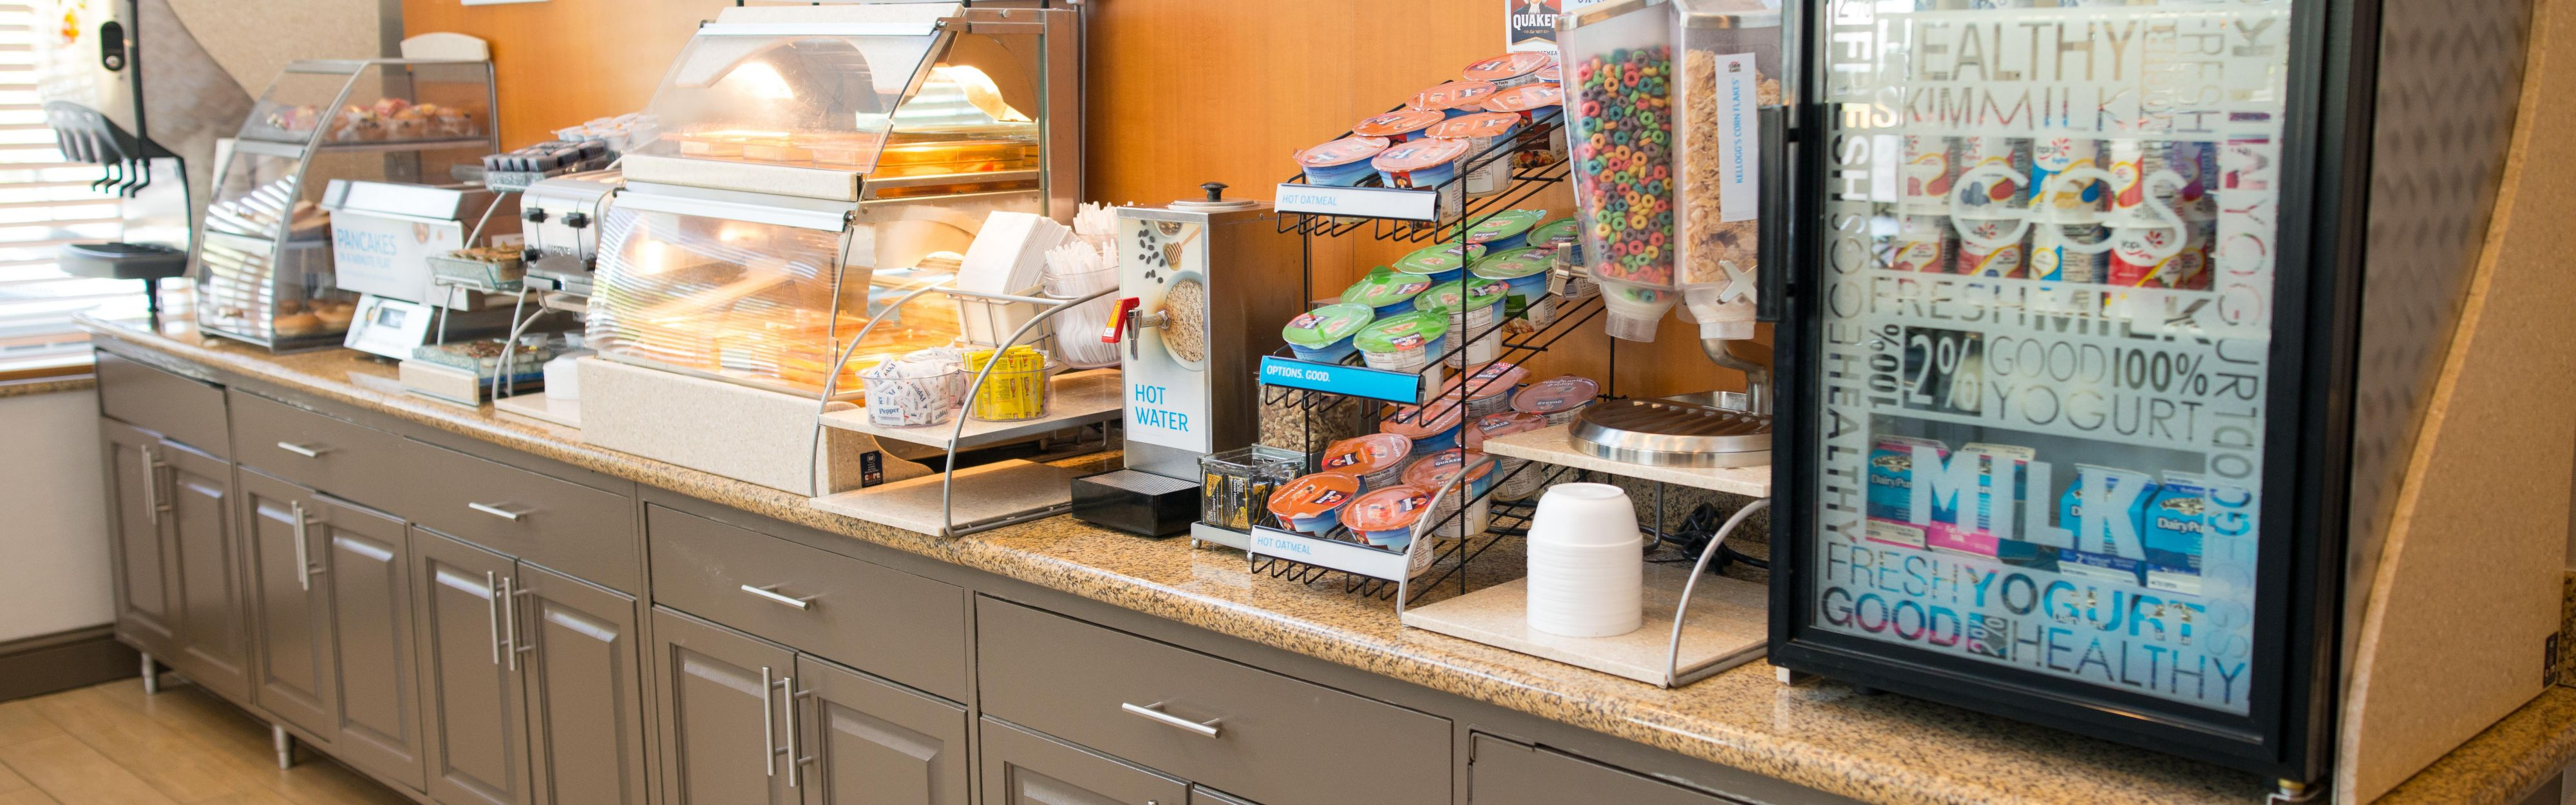 Holiday Inn Express & Suites Chanhassen image 3